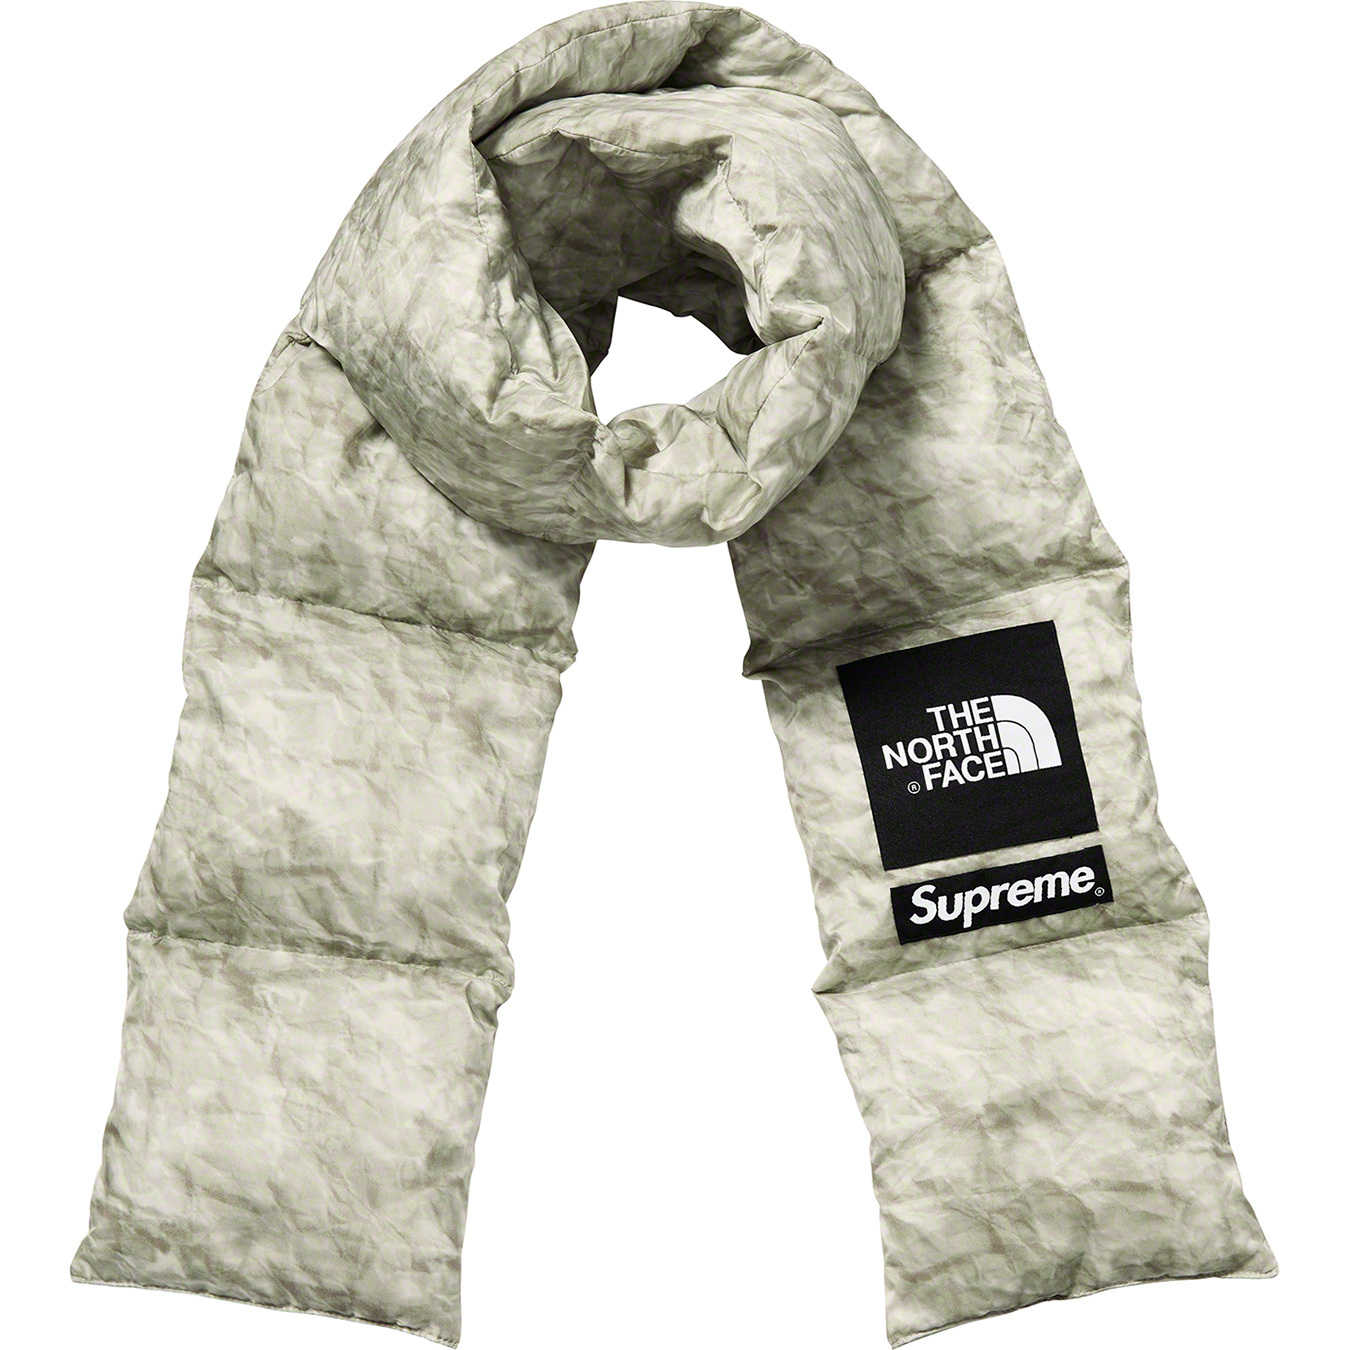 supreme-the-north-face-collection-19aw-19fw-release-20191228-week18-paper-print-700-fill-down-scarf